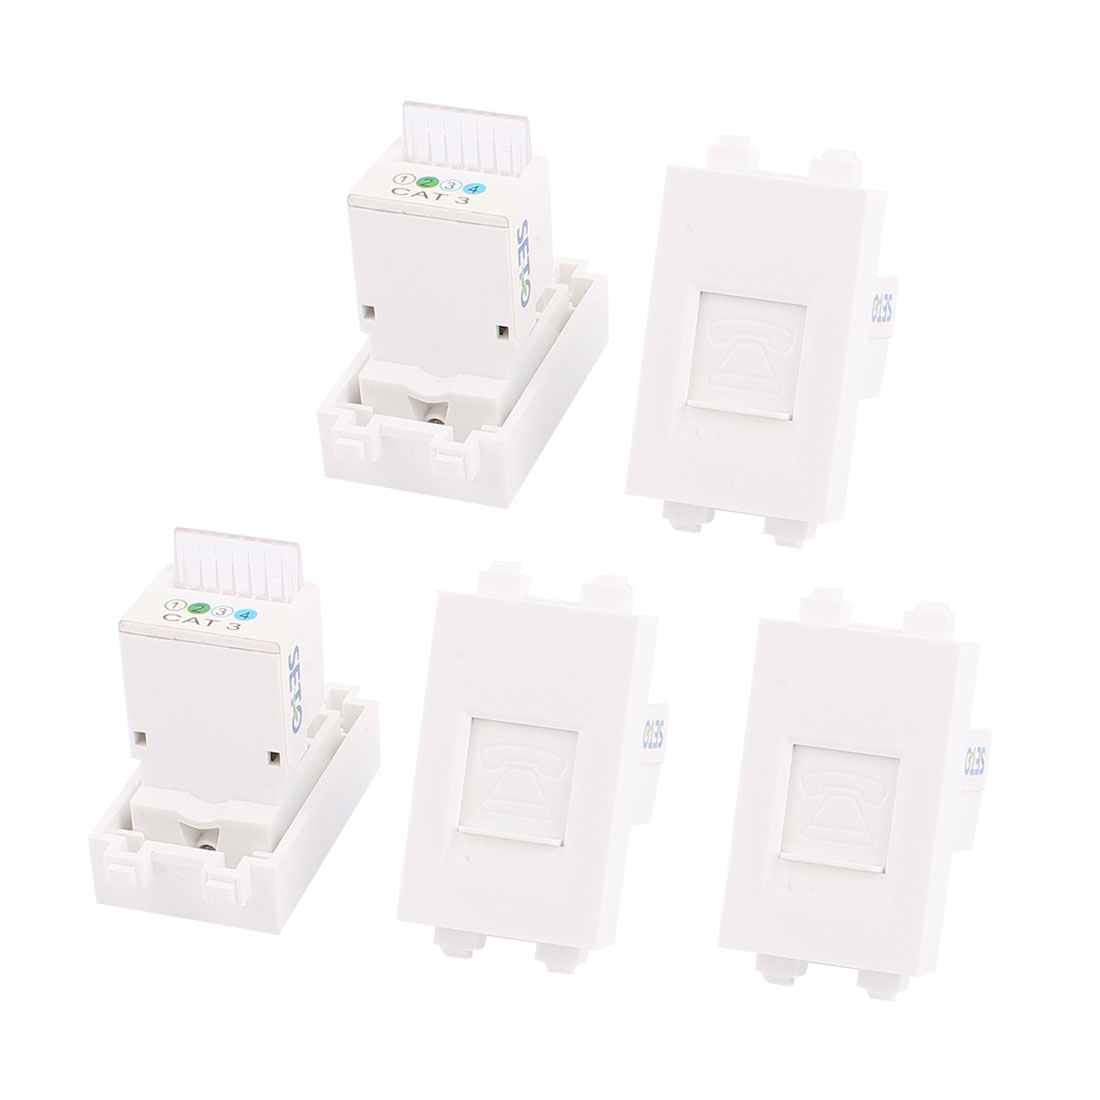 5 Pcs RJ11 8P4C Phone Coupler Connector Modular Socket for 128 Wall Plate Panel